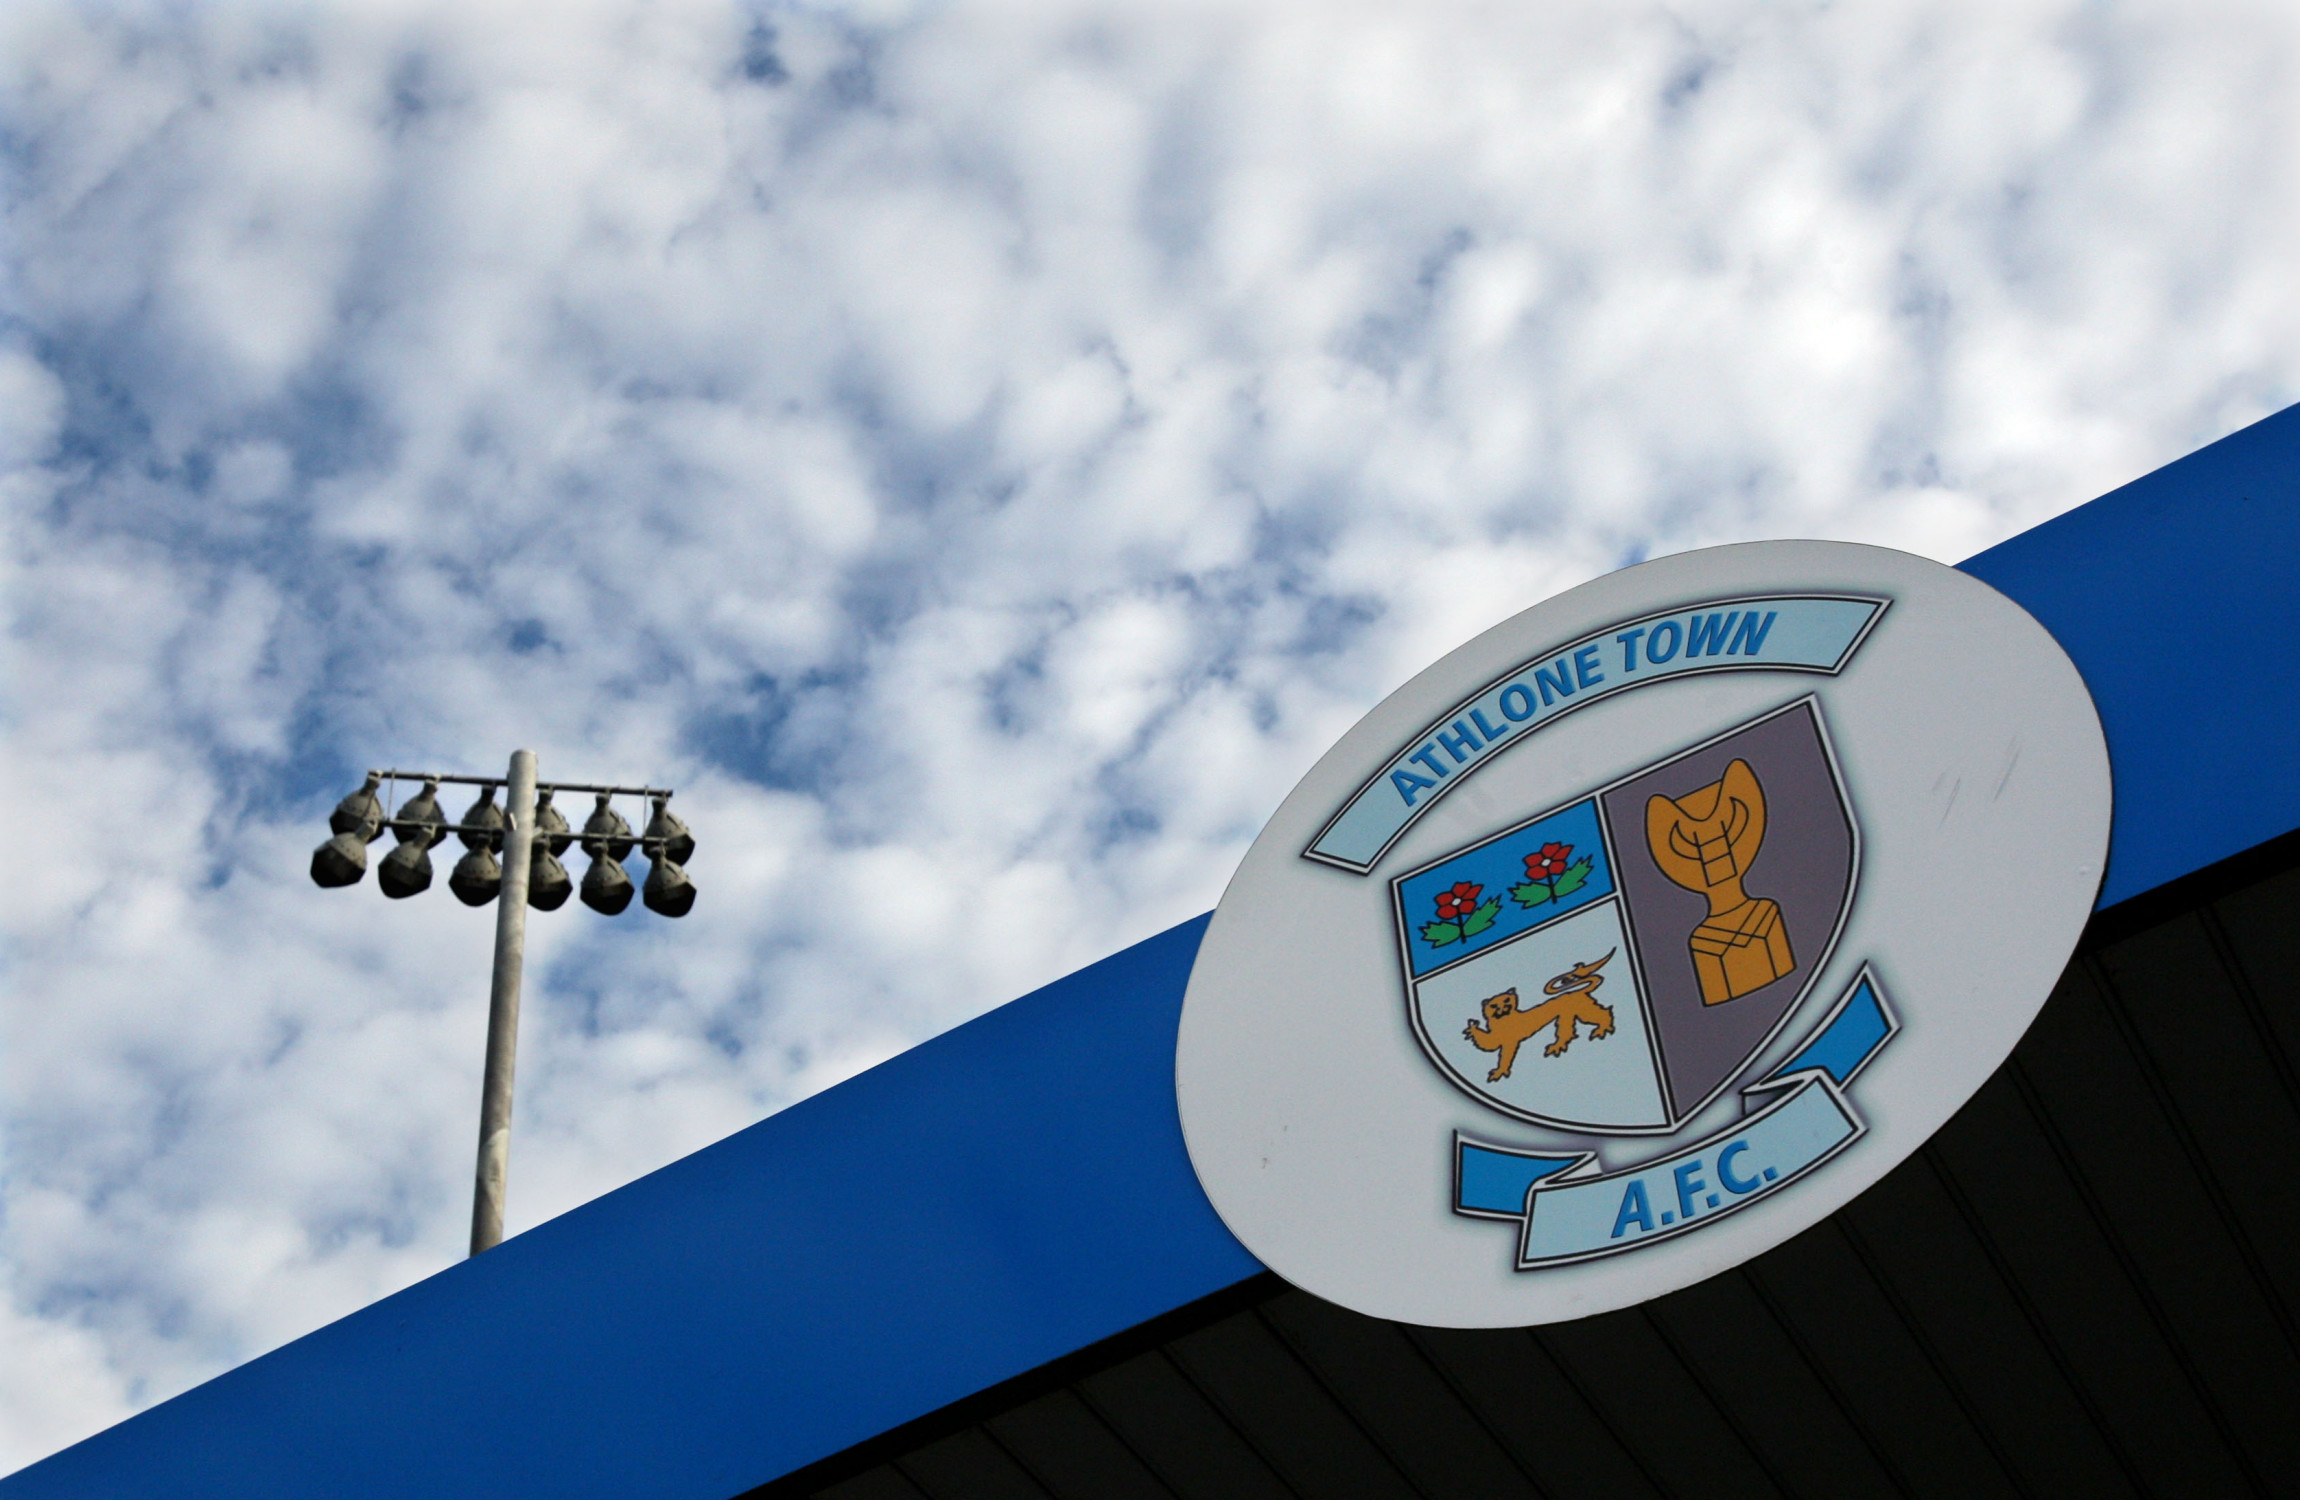 Two Athlone Town players handed 12-month bans for 'manipulating matches'